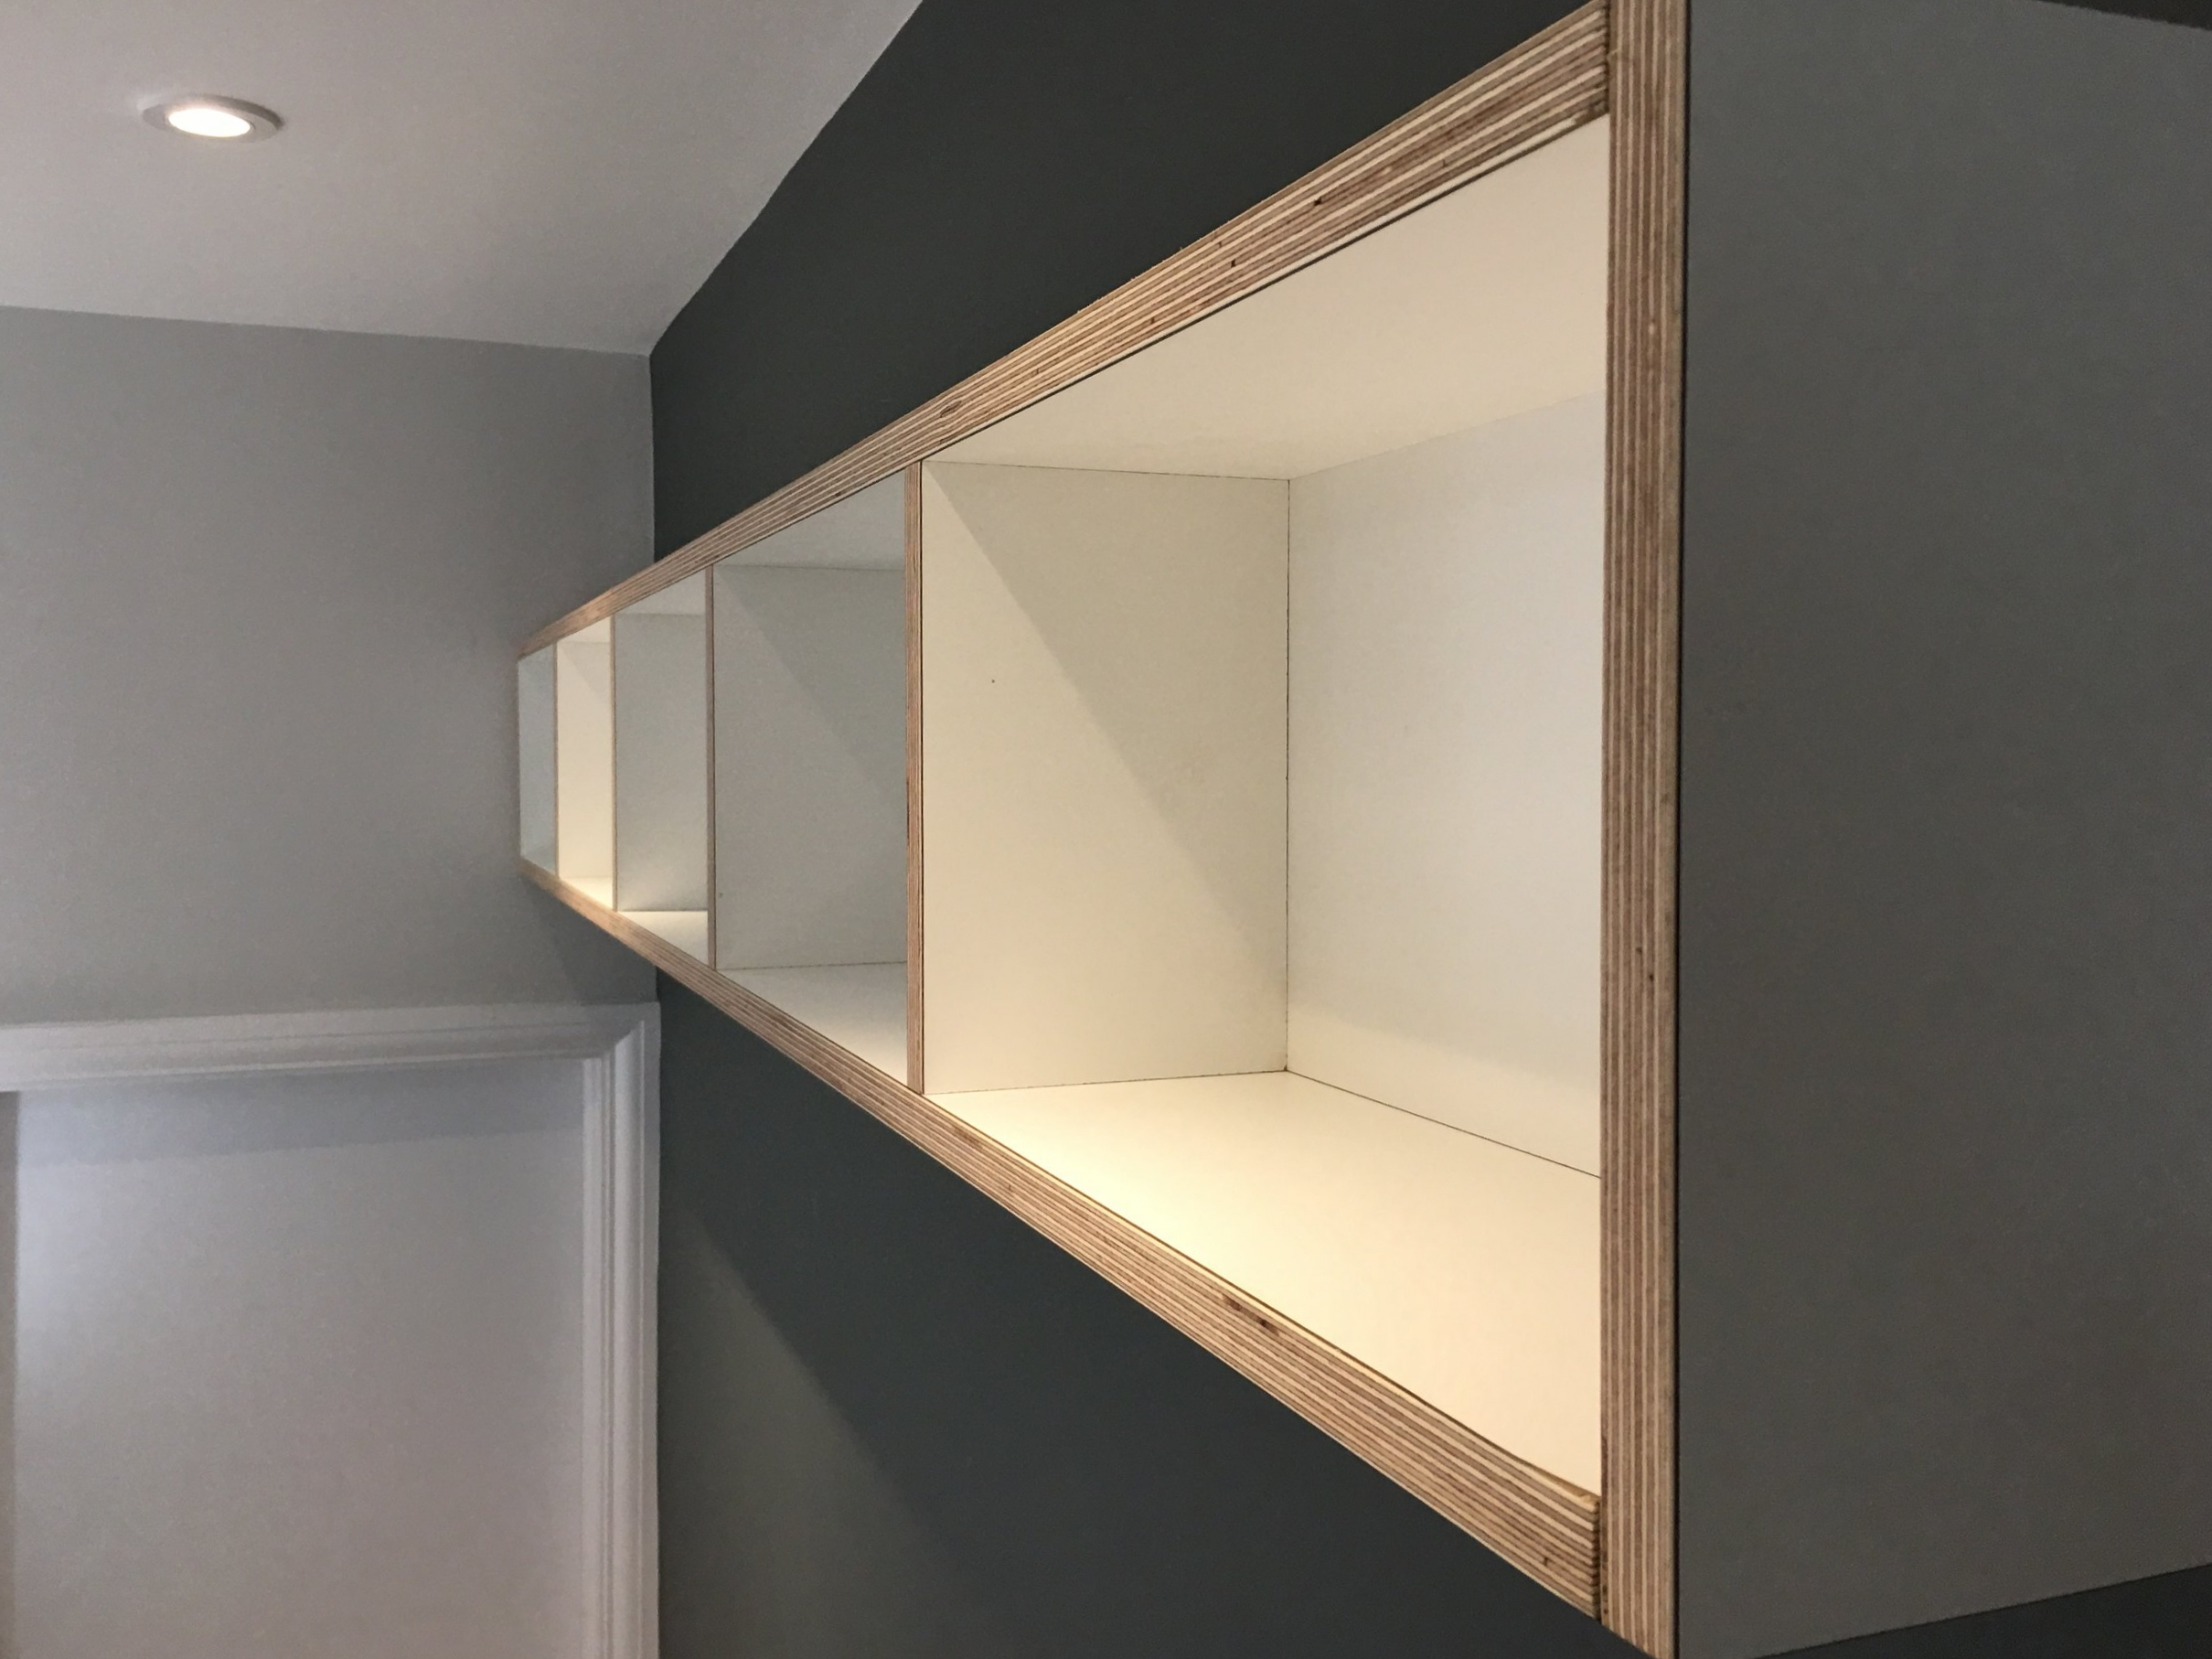 Birch plywood display shelf